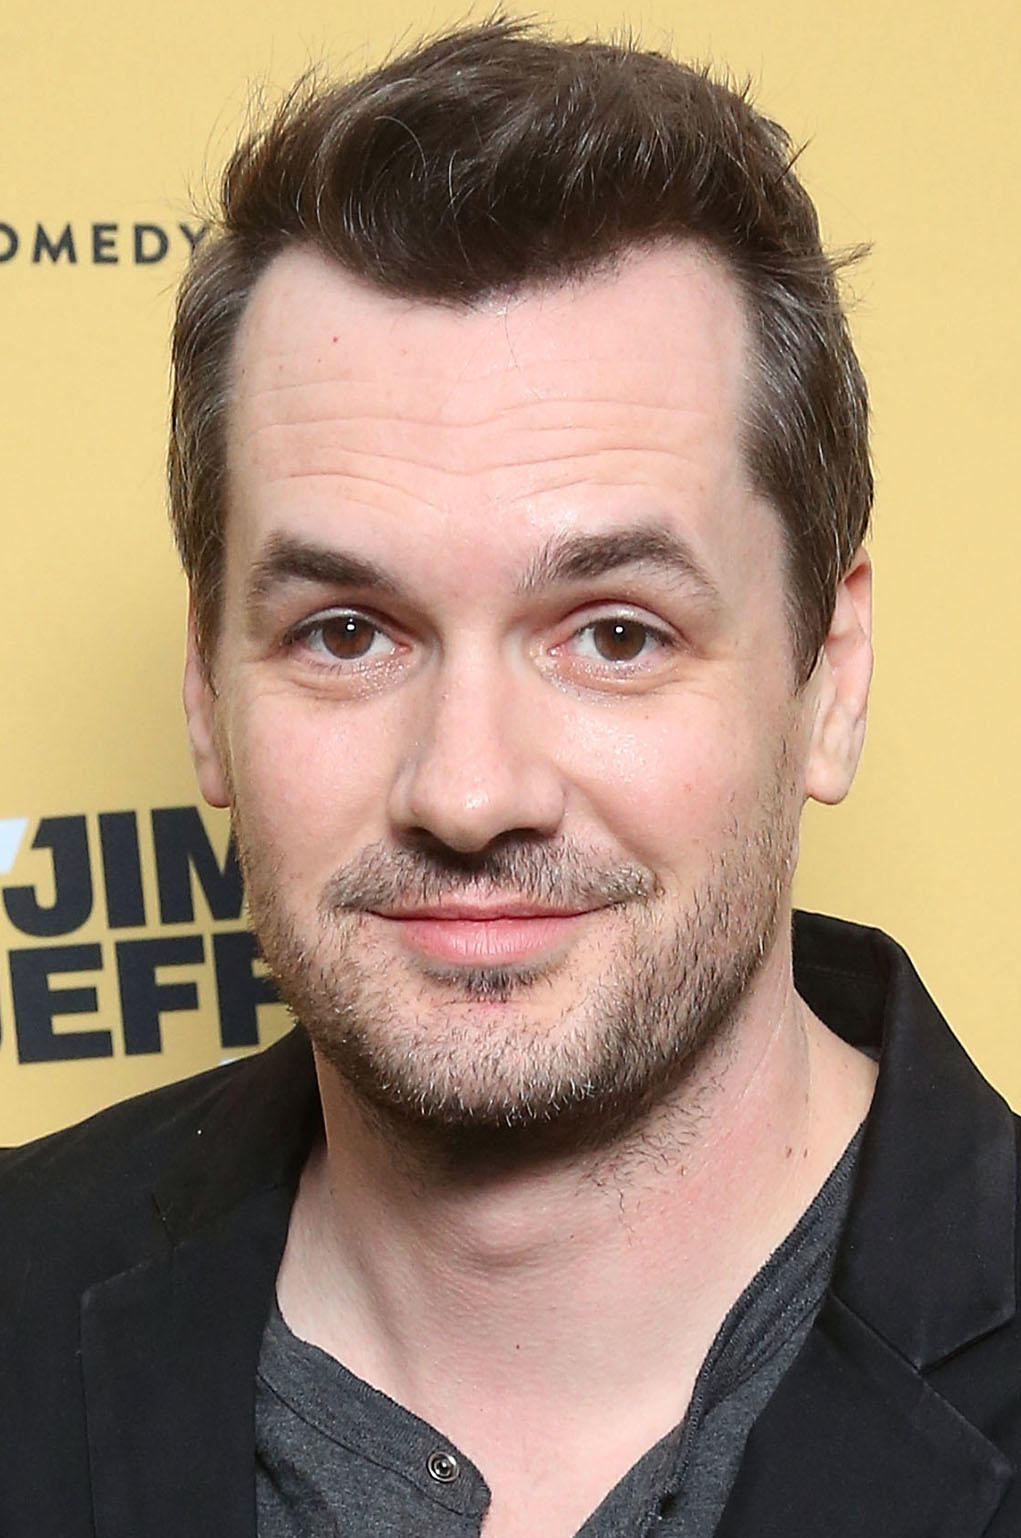 Jim Jefferies at the Comedy Central premiere party for